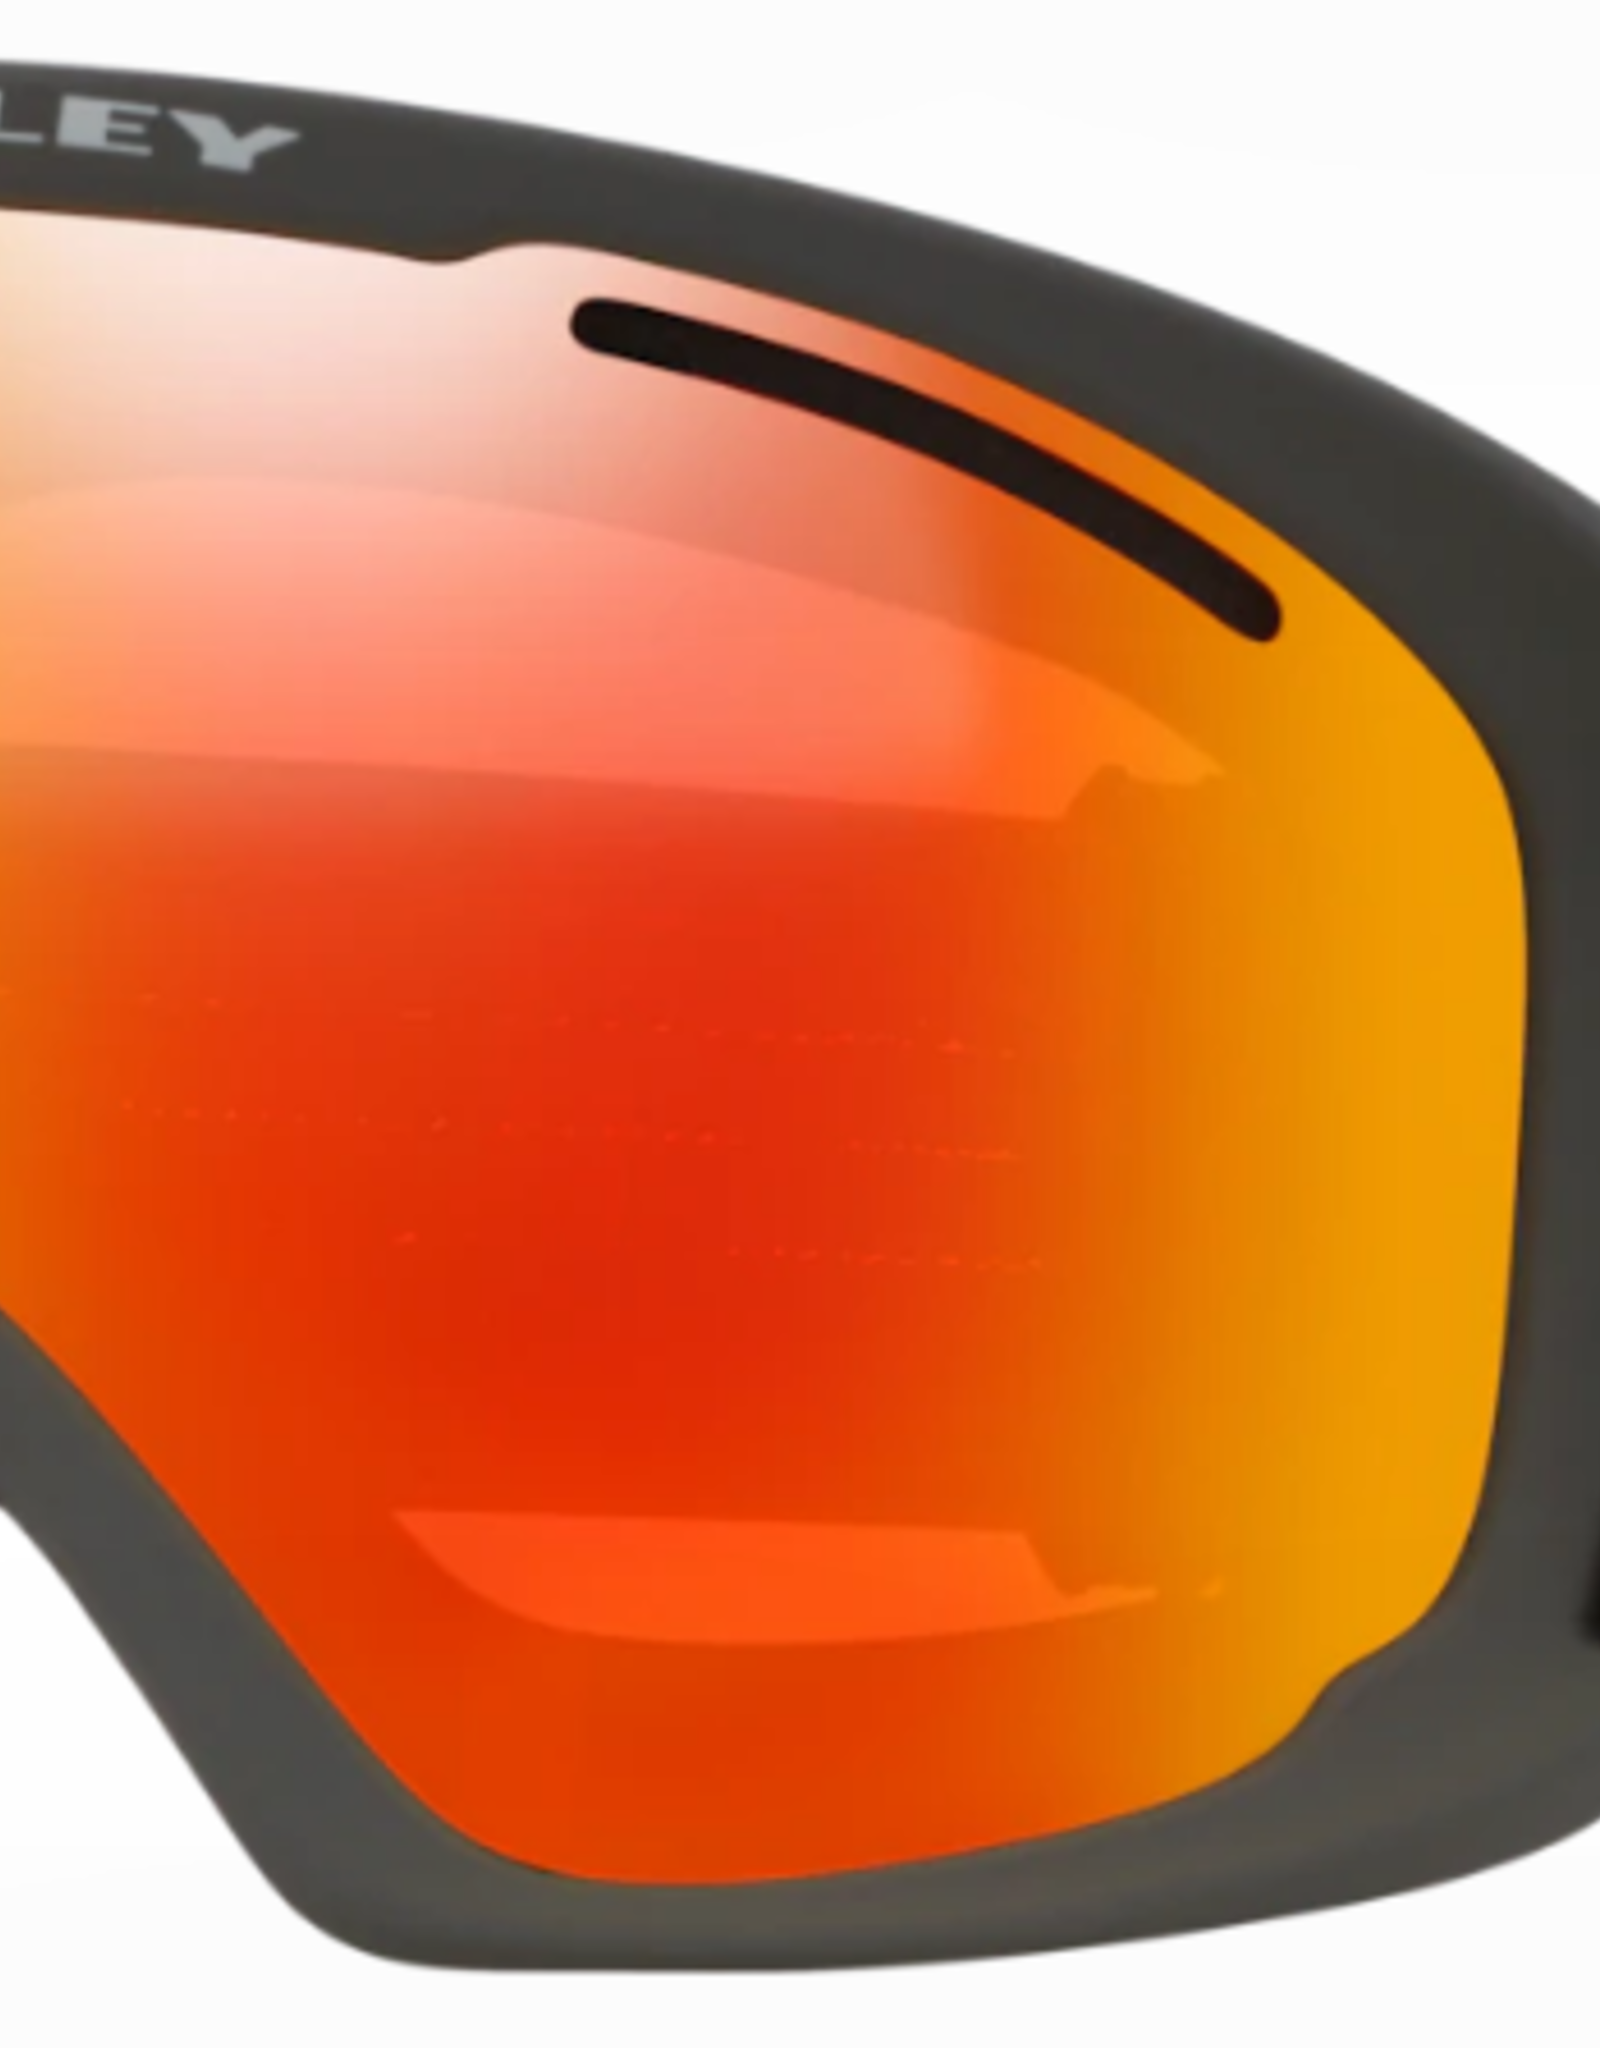 Oakley Oakley - O-FRAME 2 PRO XL - Dark Brush Camo - w/ Fire Iridium + Persimmon